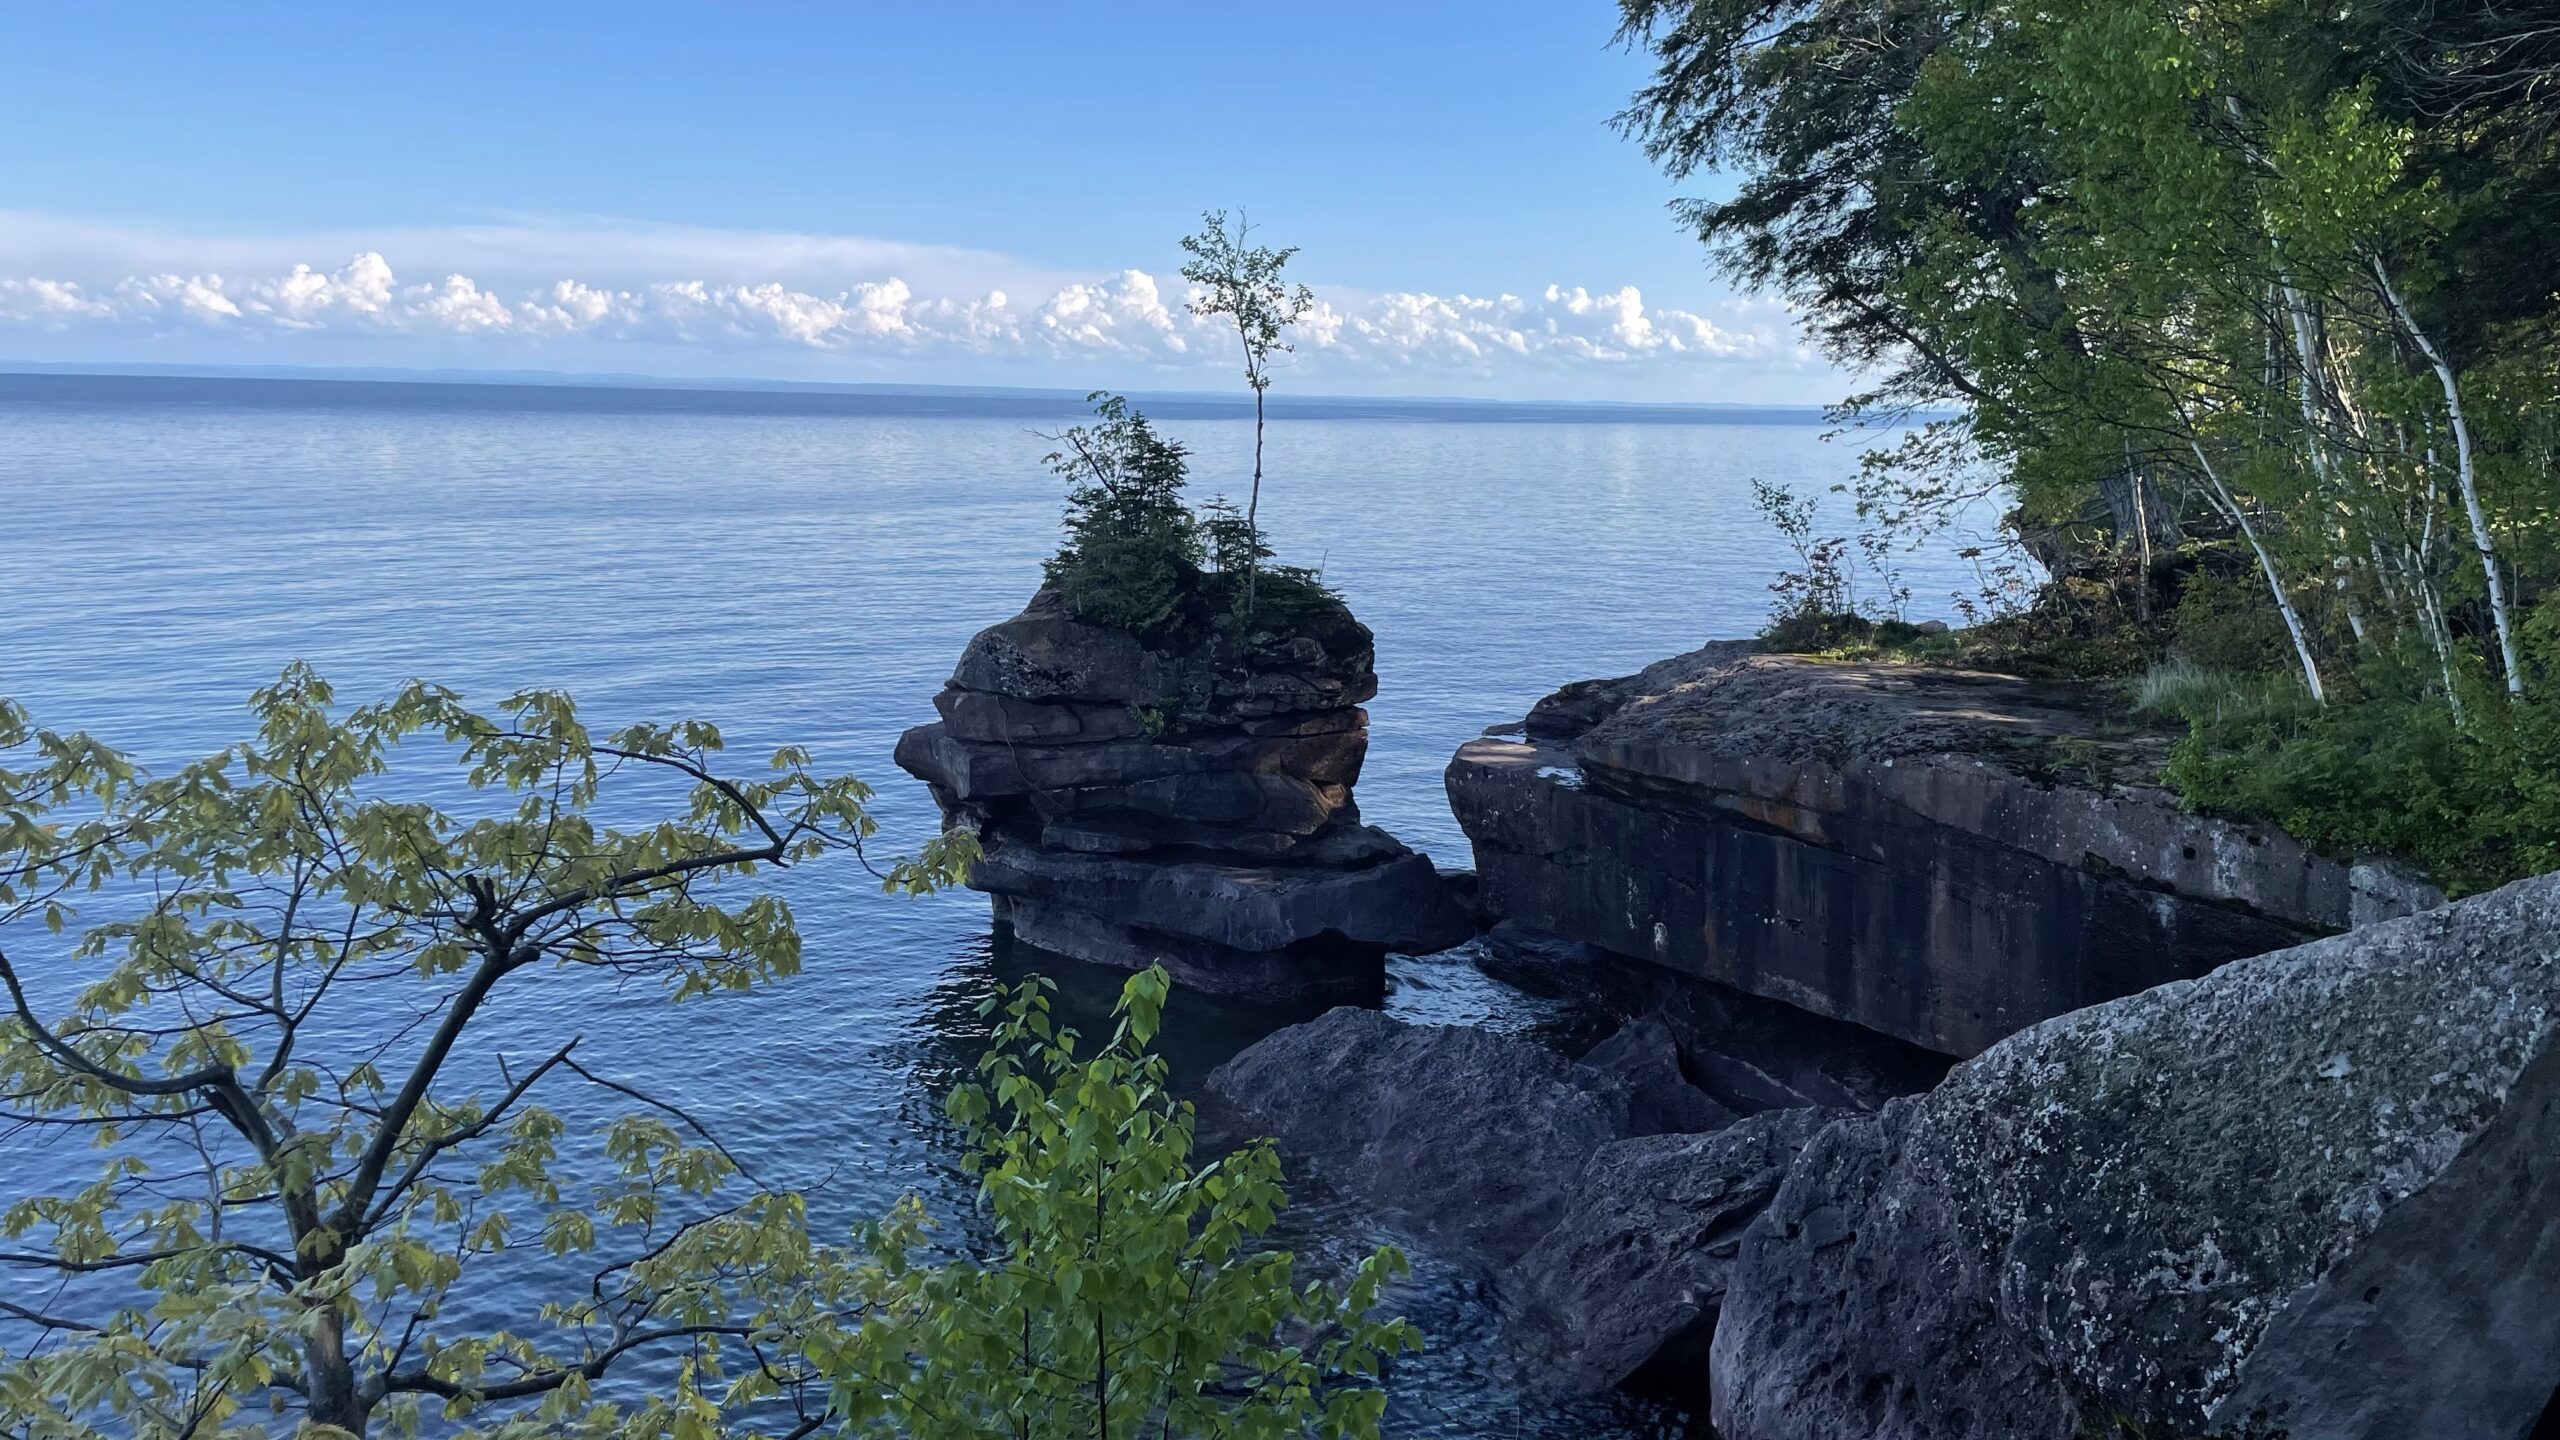 Memorial Day Weekend 2021: Porcupine Mountains and Madeline Island